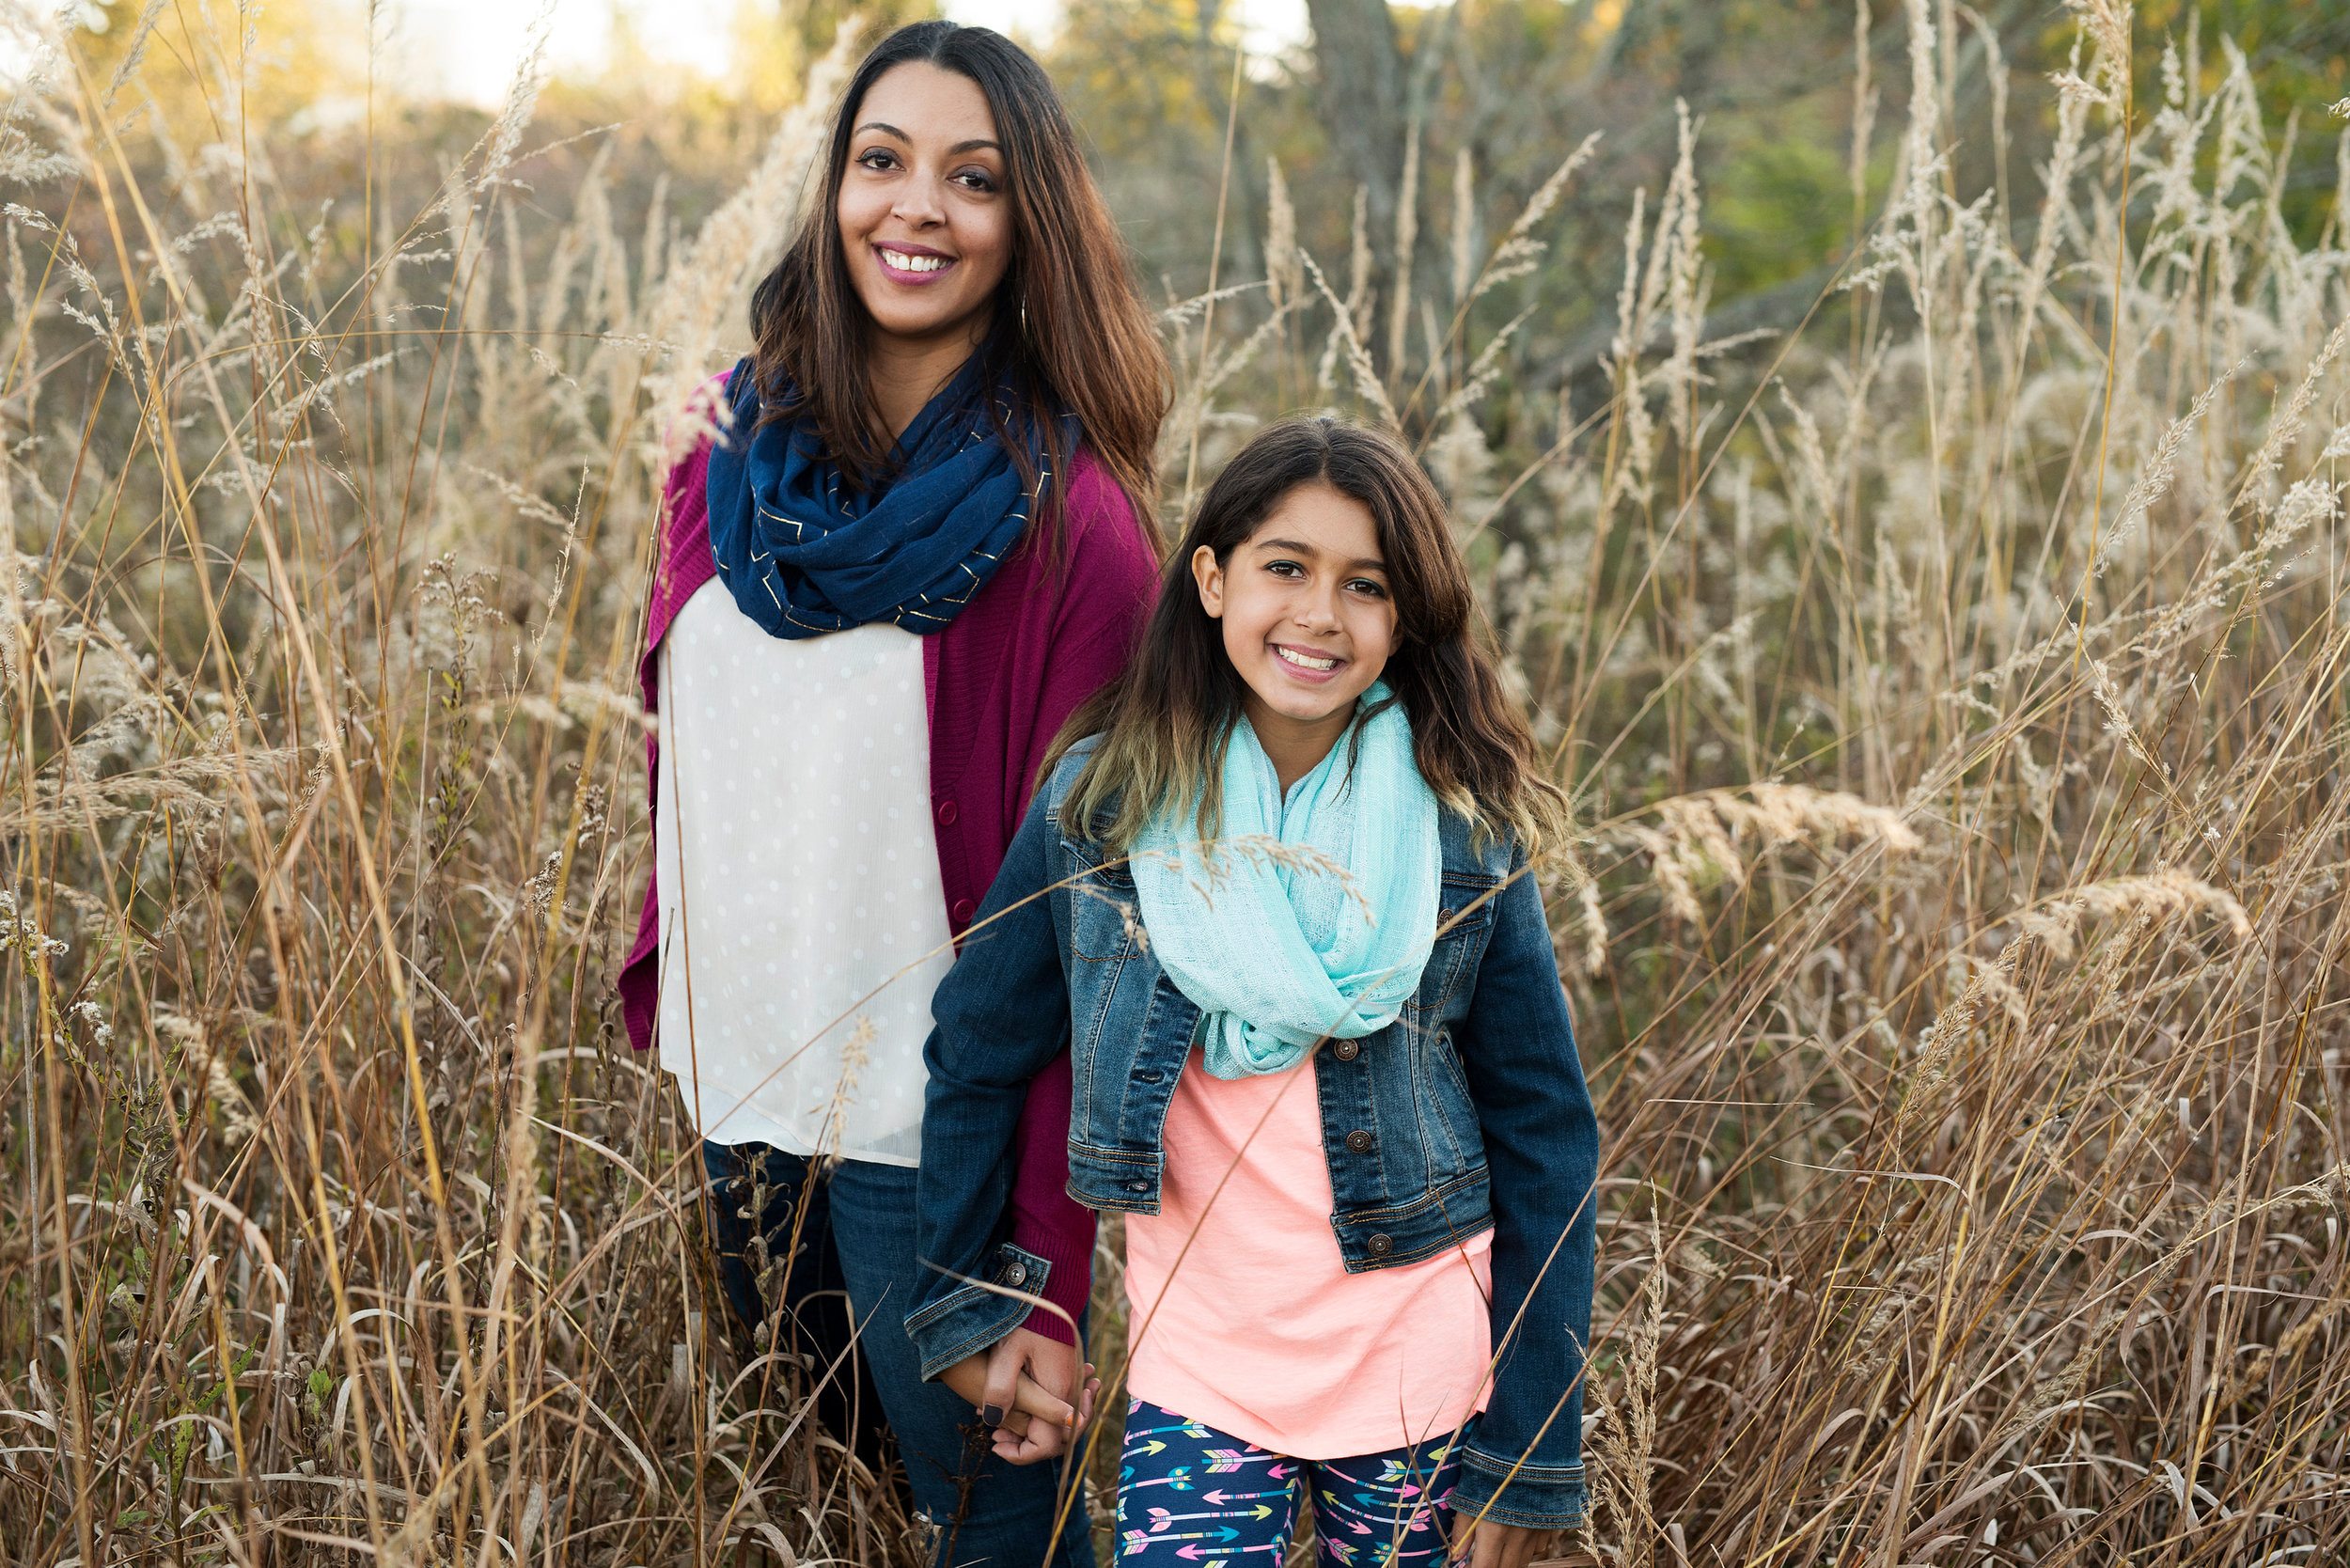 Honoring a child's gut instinct and teaching them about consent. Read more from Holl & Lane Magazine at hollandlanemag.com